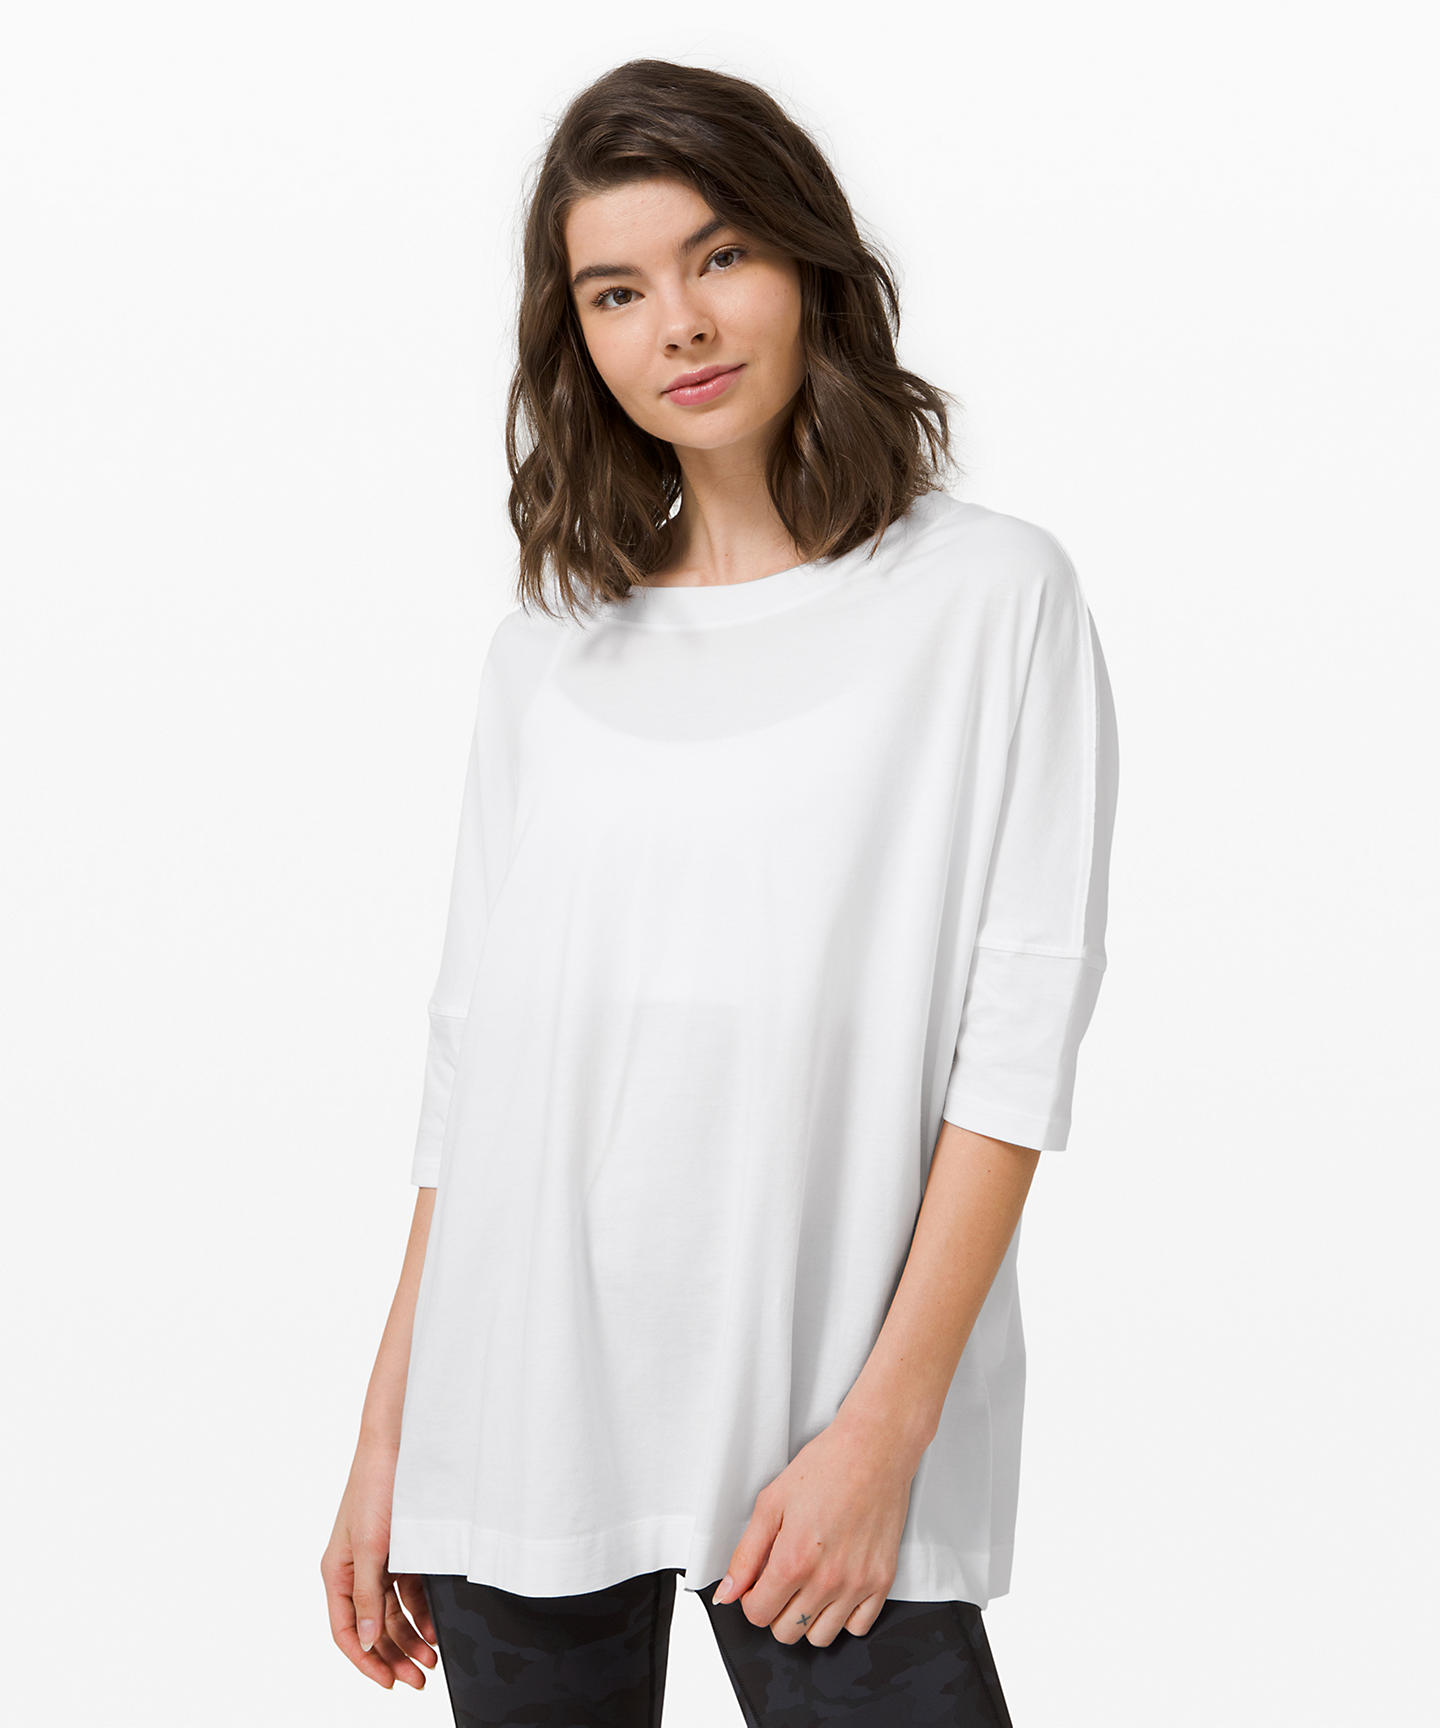 All Yours Boyfriend Box Tee, Lululemon